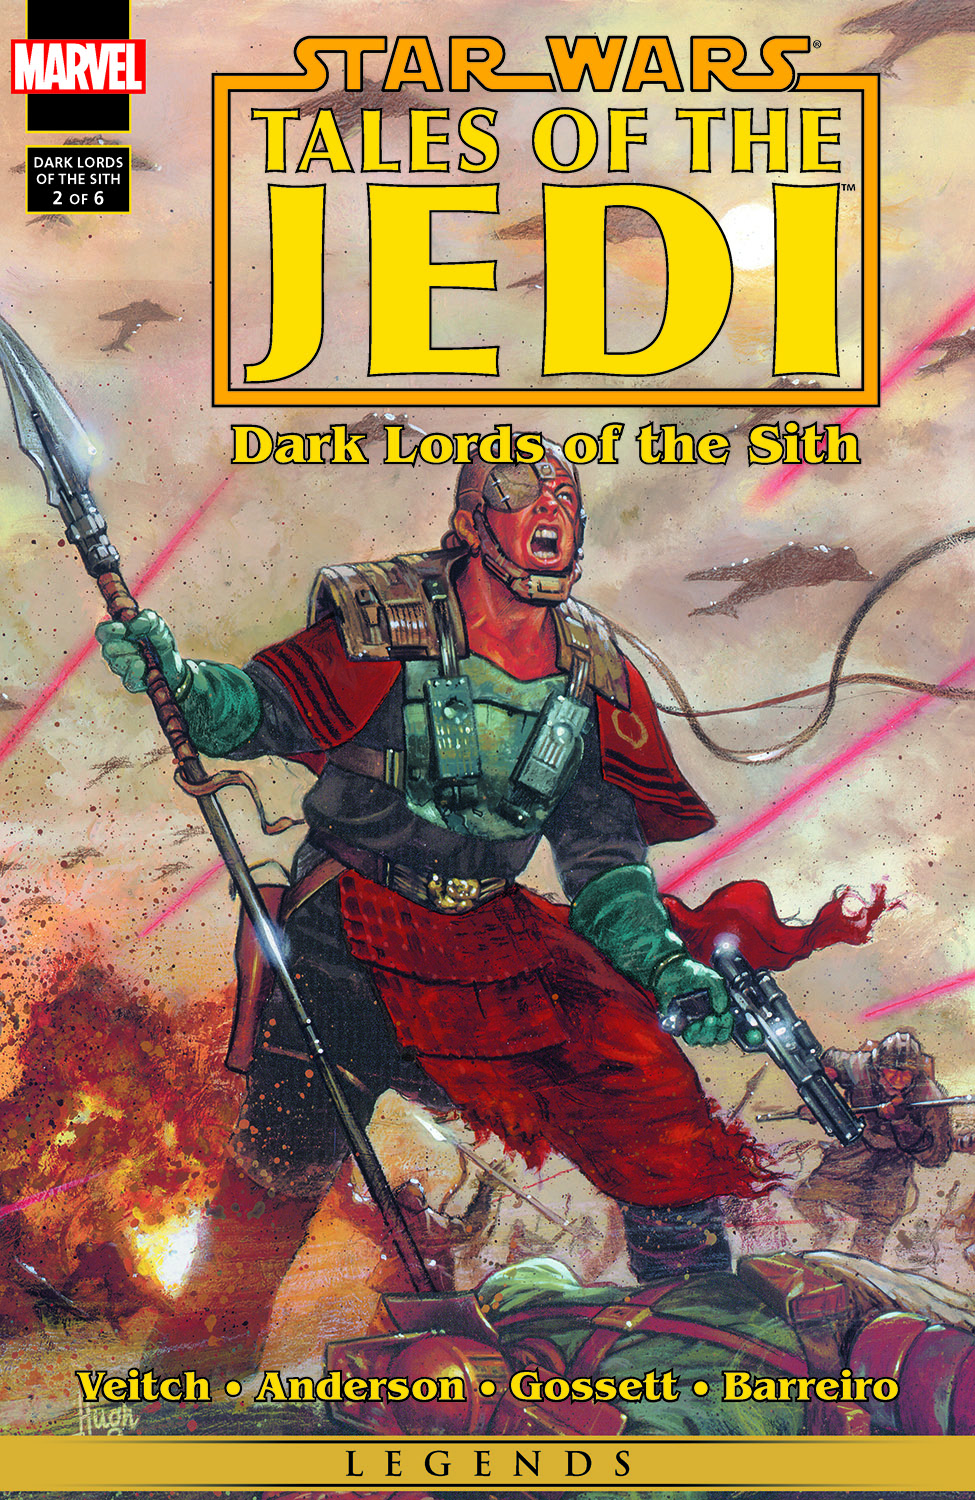 Star Wars: Tales Of The Jedi - Dark Lords Of The Sith (1994) #2